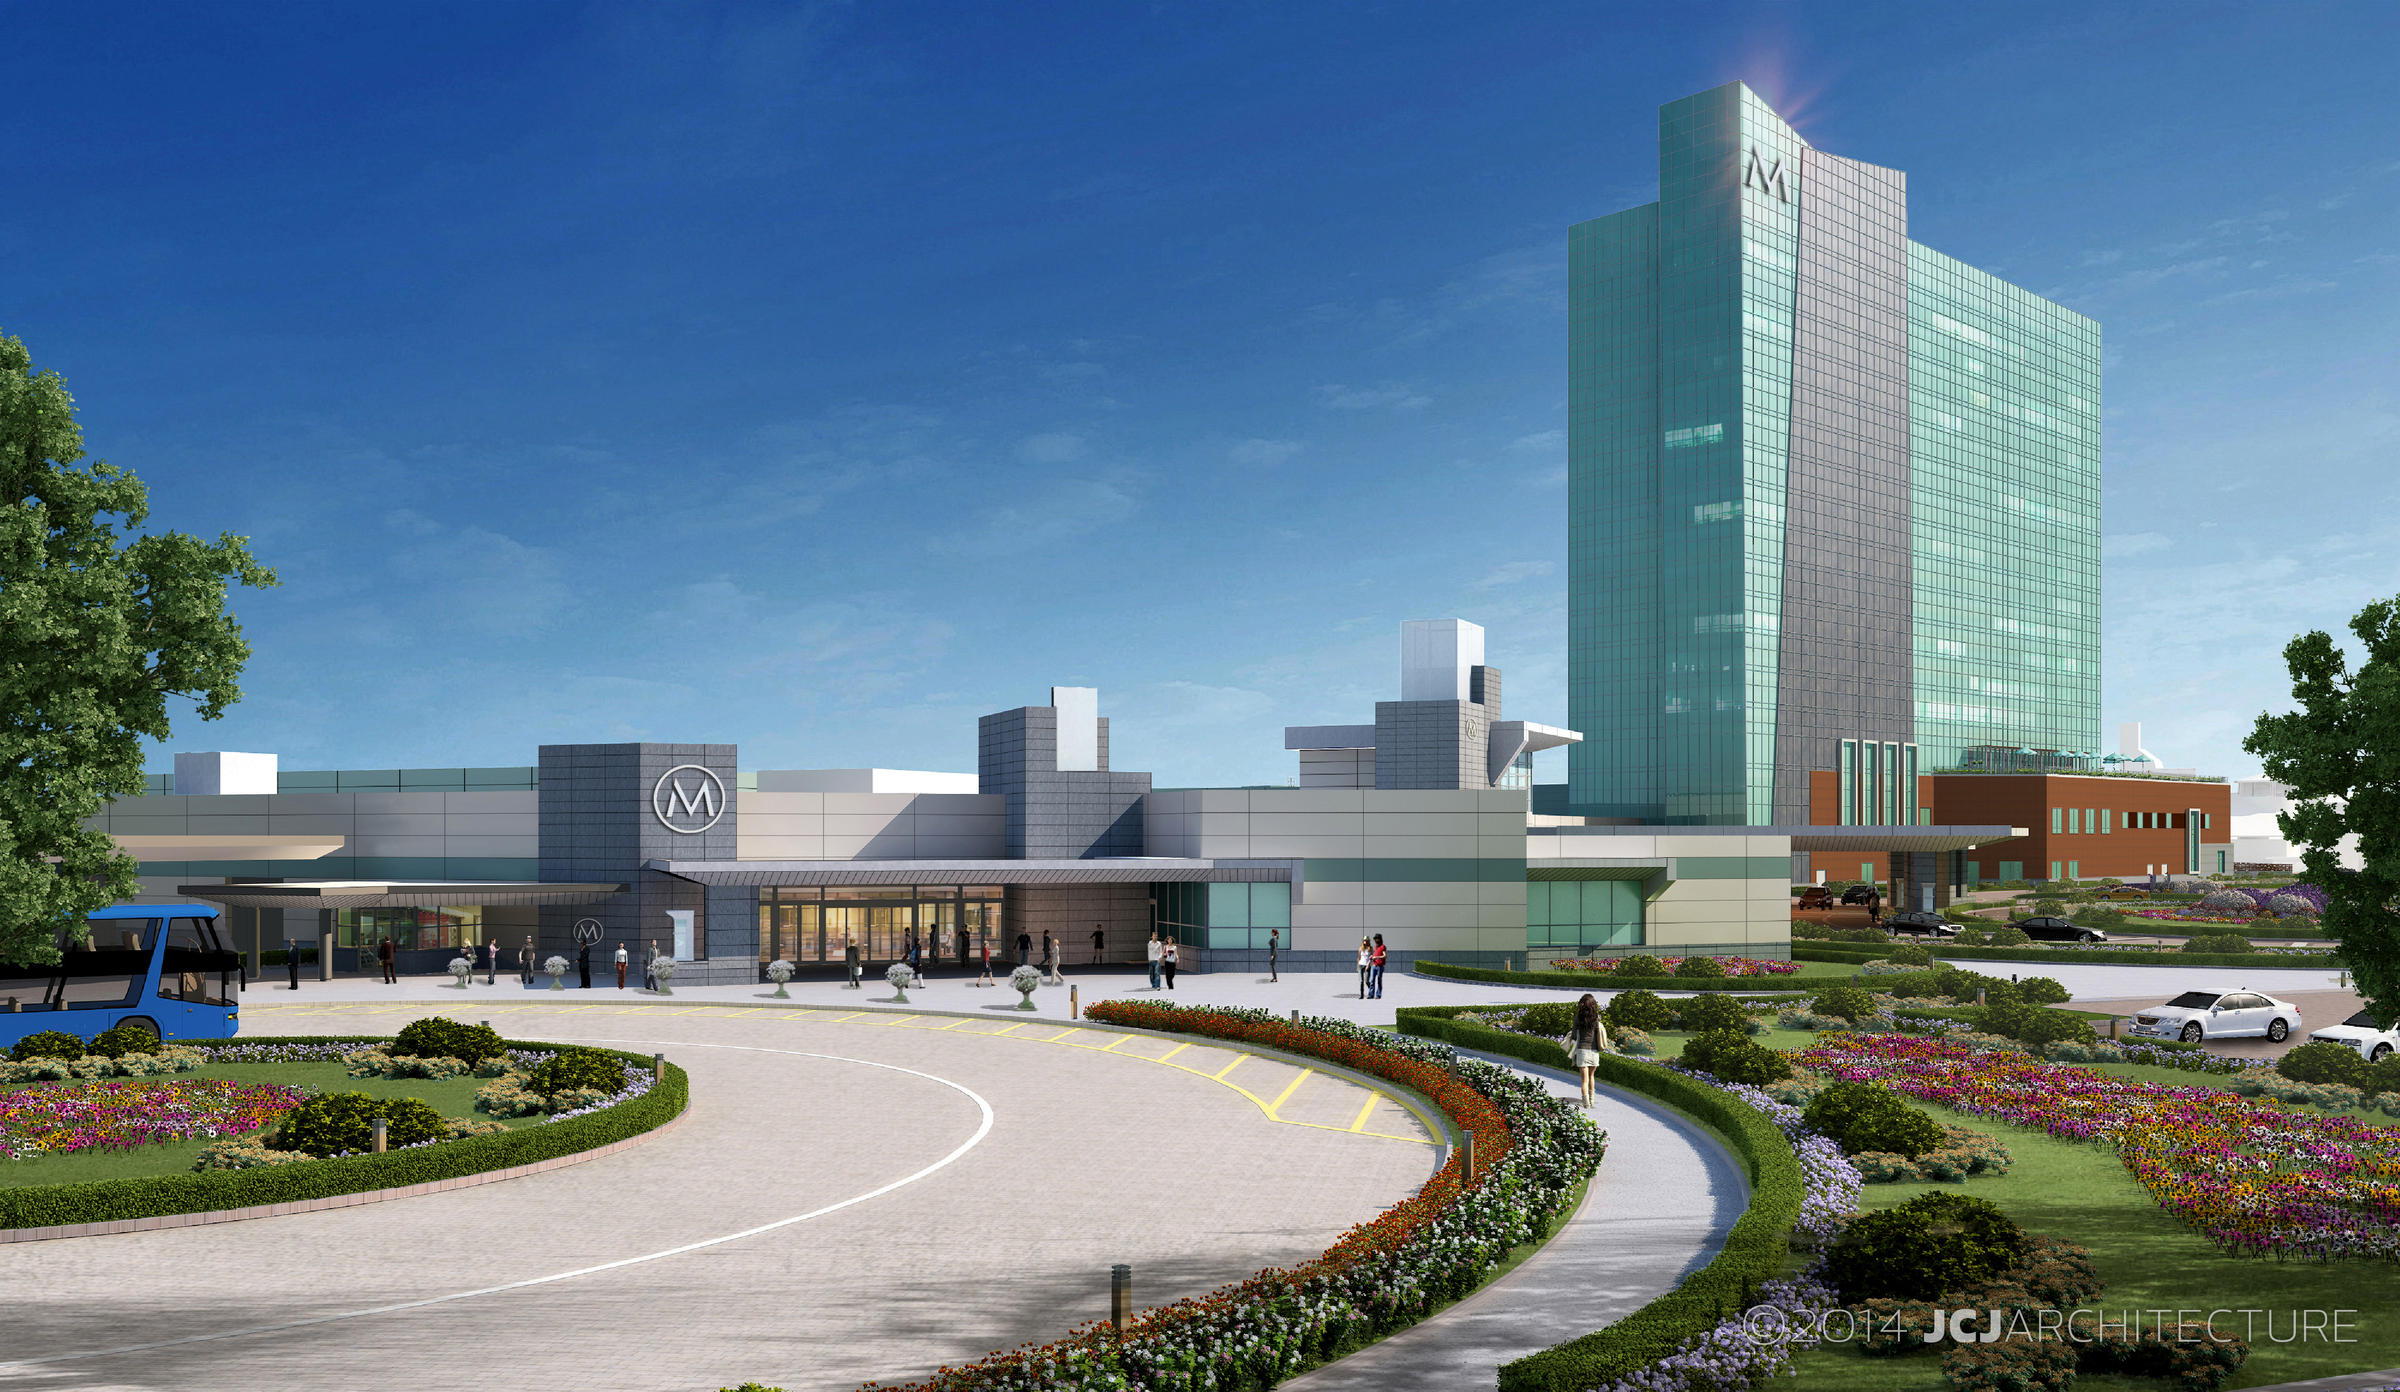 Sullivan Wins Casino Bid For The Catskills Hudson Valley Wamc